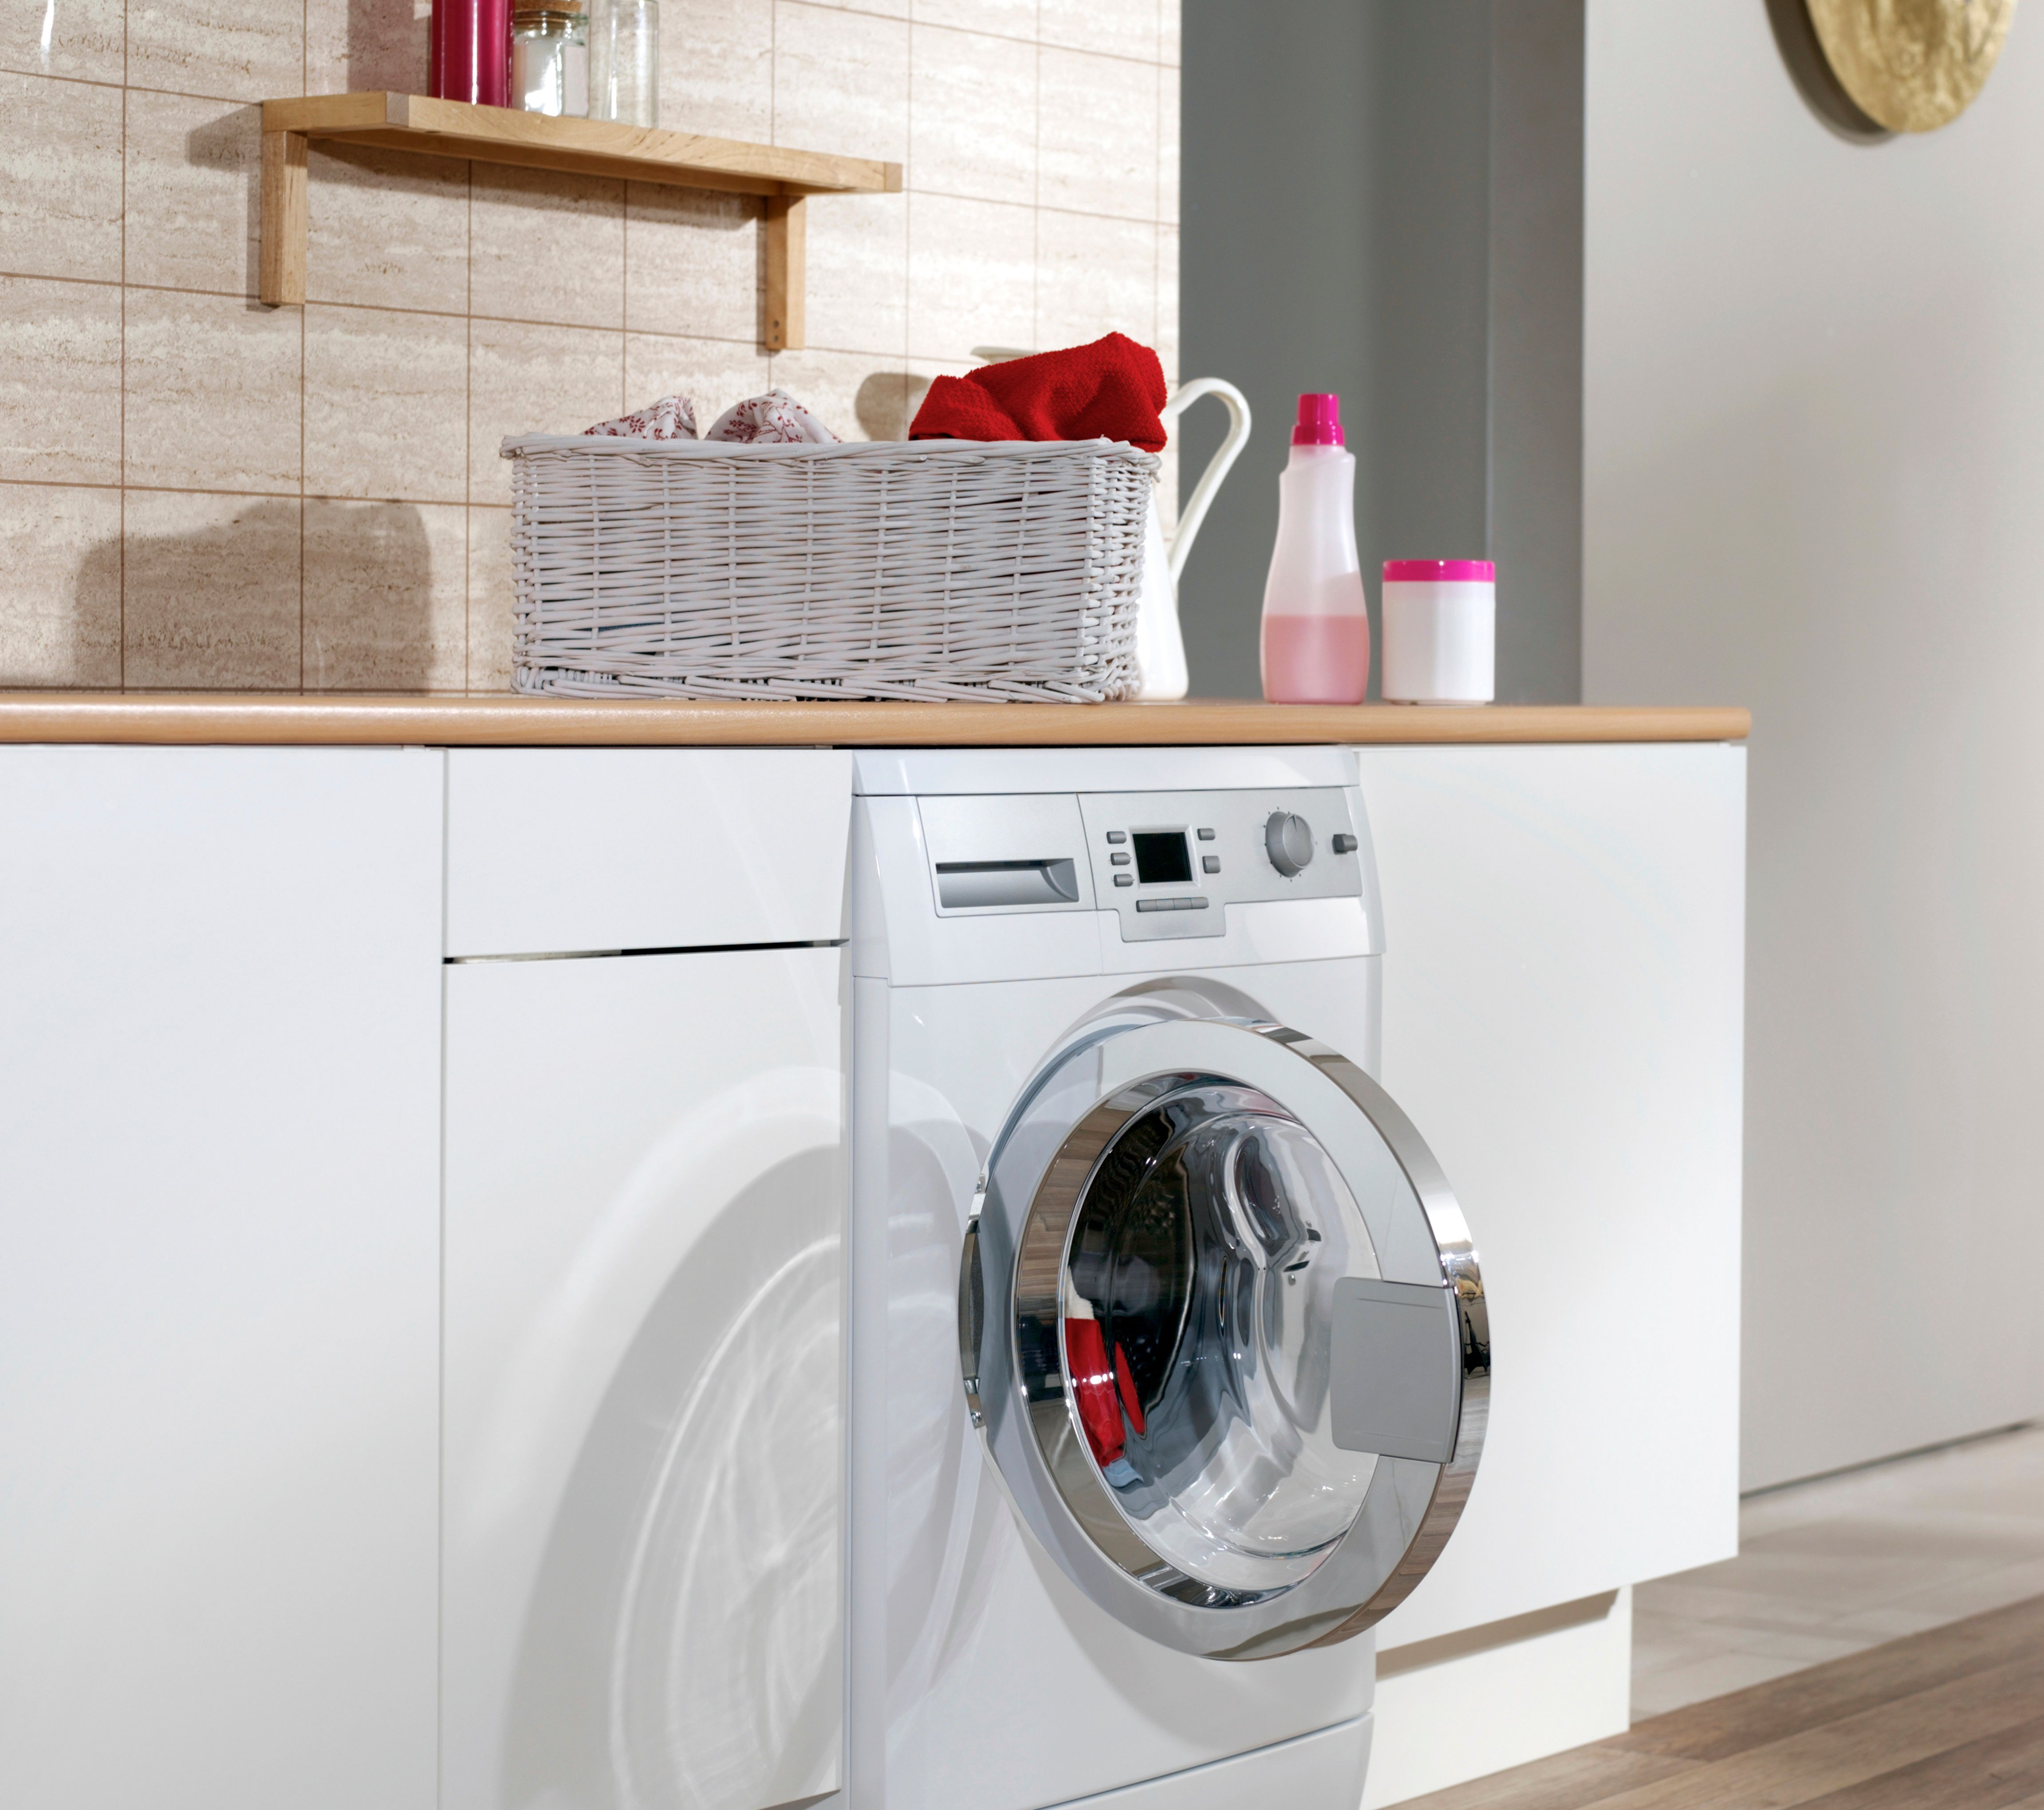 How To Sanitize And Disinfect A Washer Dryer U Frezz Multipurpose Antimicrobial Spray